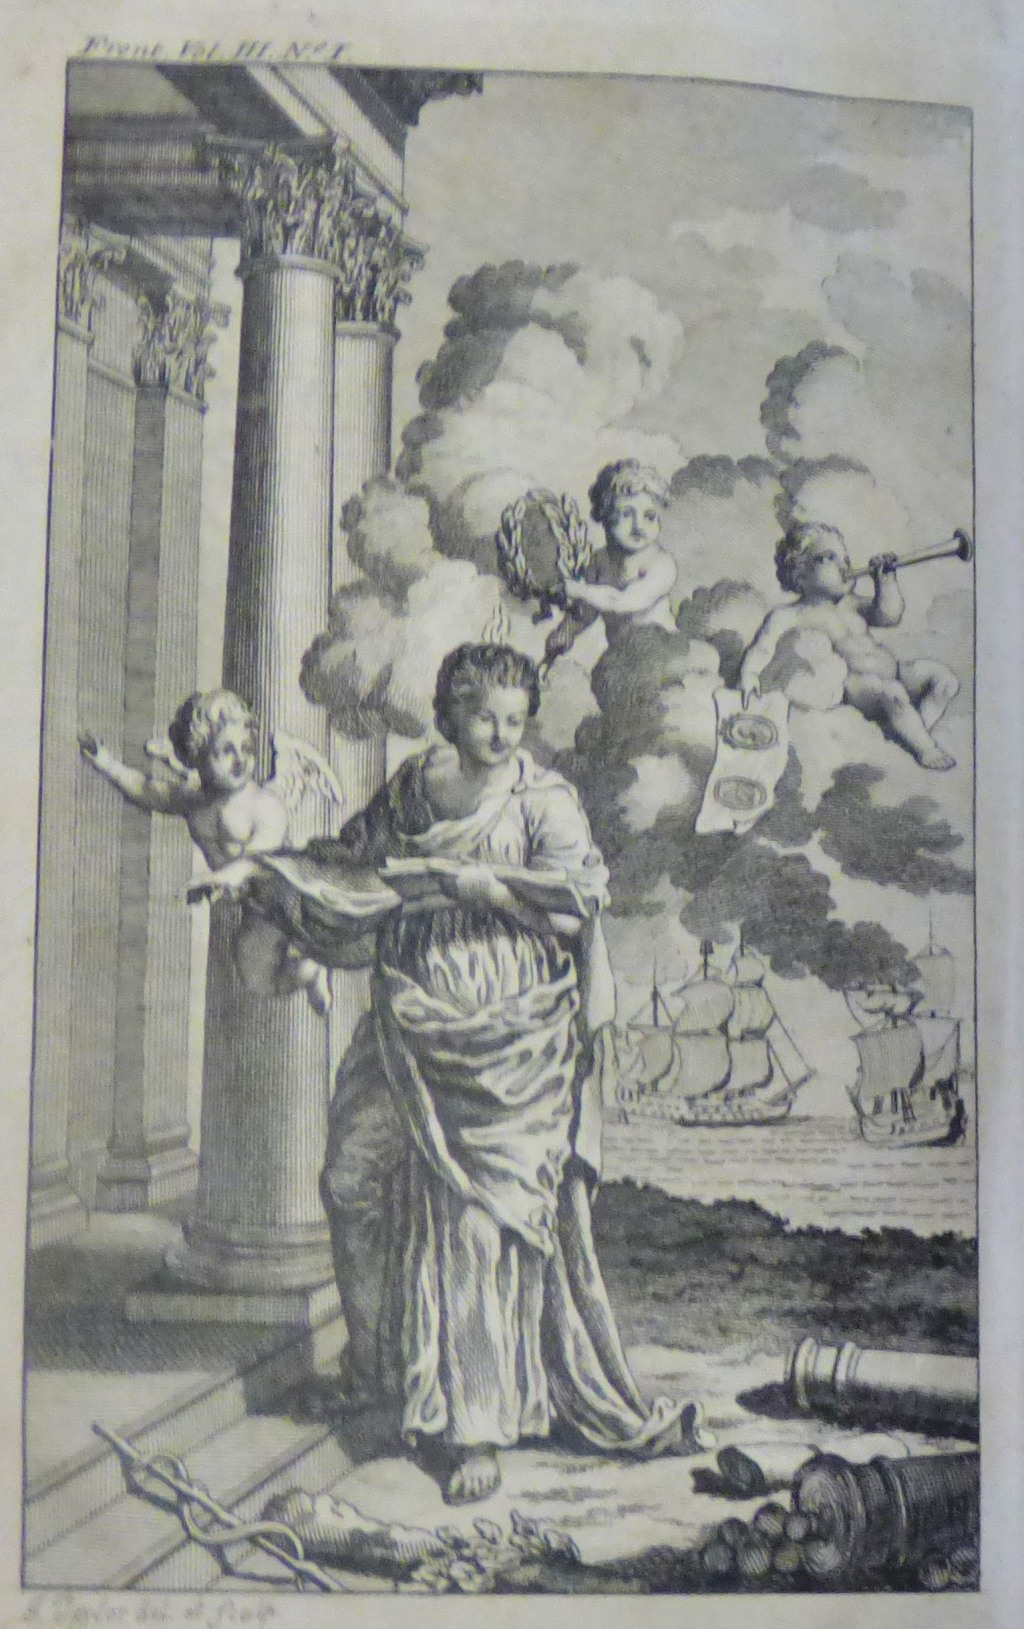 Lot 31 - Smith H Town and County 1771 printed Hamilton London Vol III with engravings fair condition